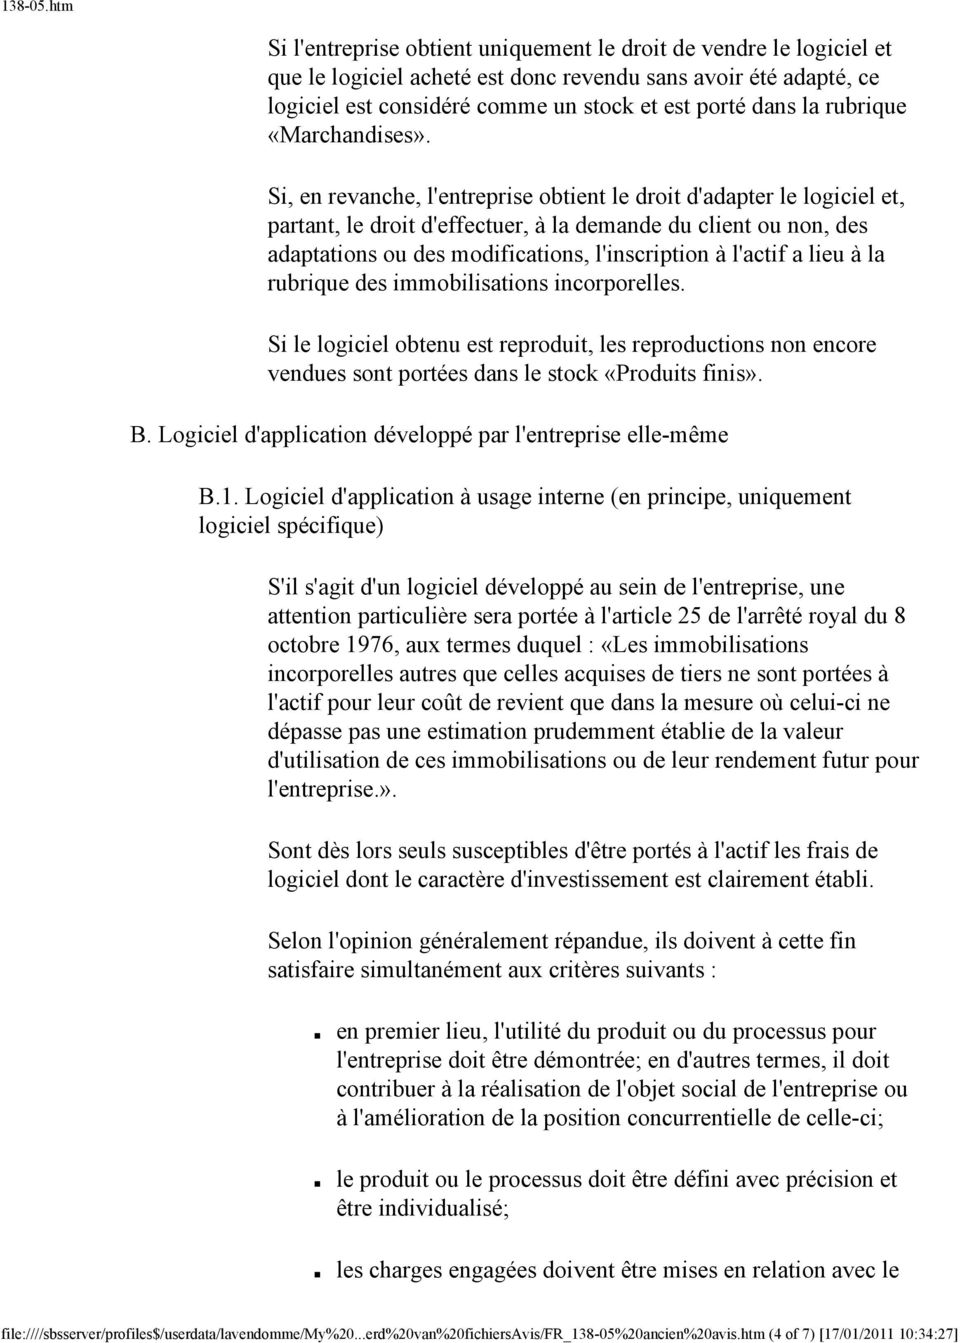 Si, en revanche, l'entreprise obtient le droit d'adapter le logiciel et, partant, le droit d'effectuer, à la demande du client ou non, des adaptations ou des modifications, l'inscription à l'actif a